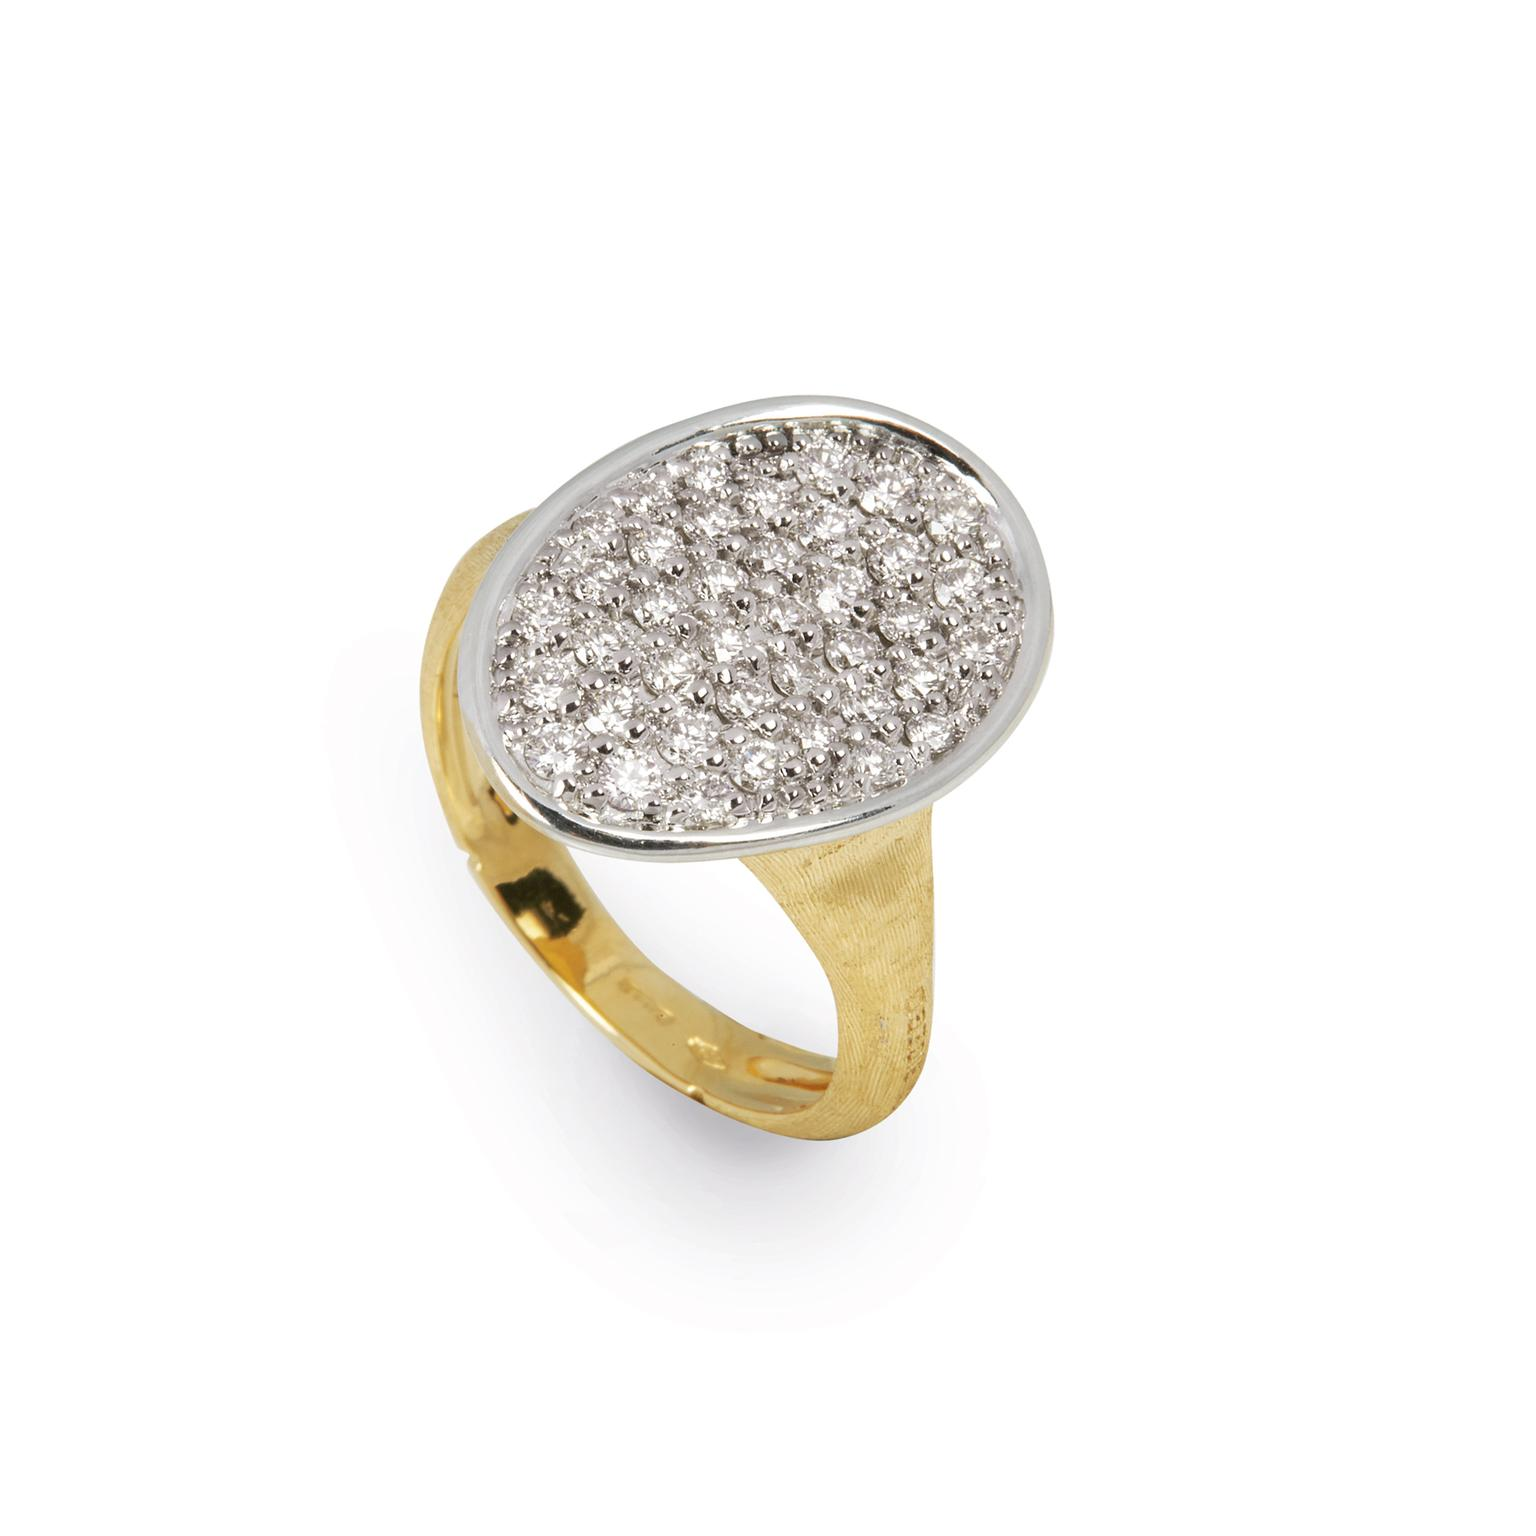 Marco Bicego diamond Lunaria ring in yellow gold